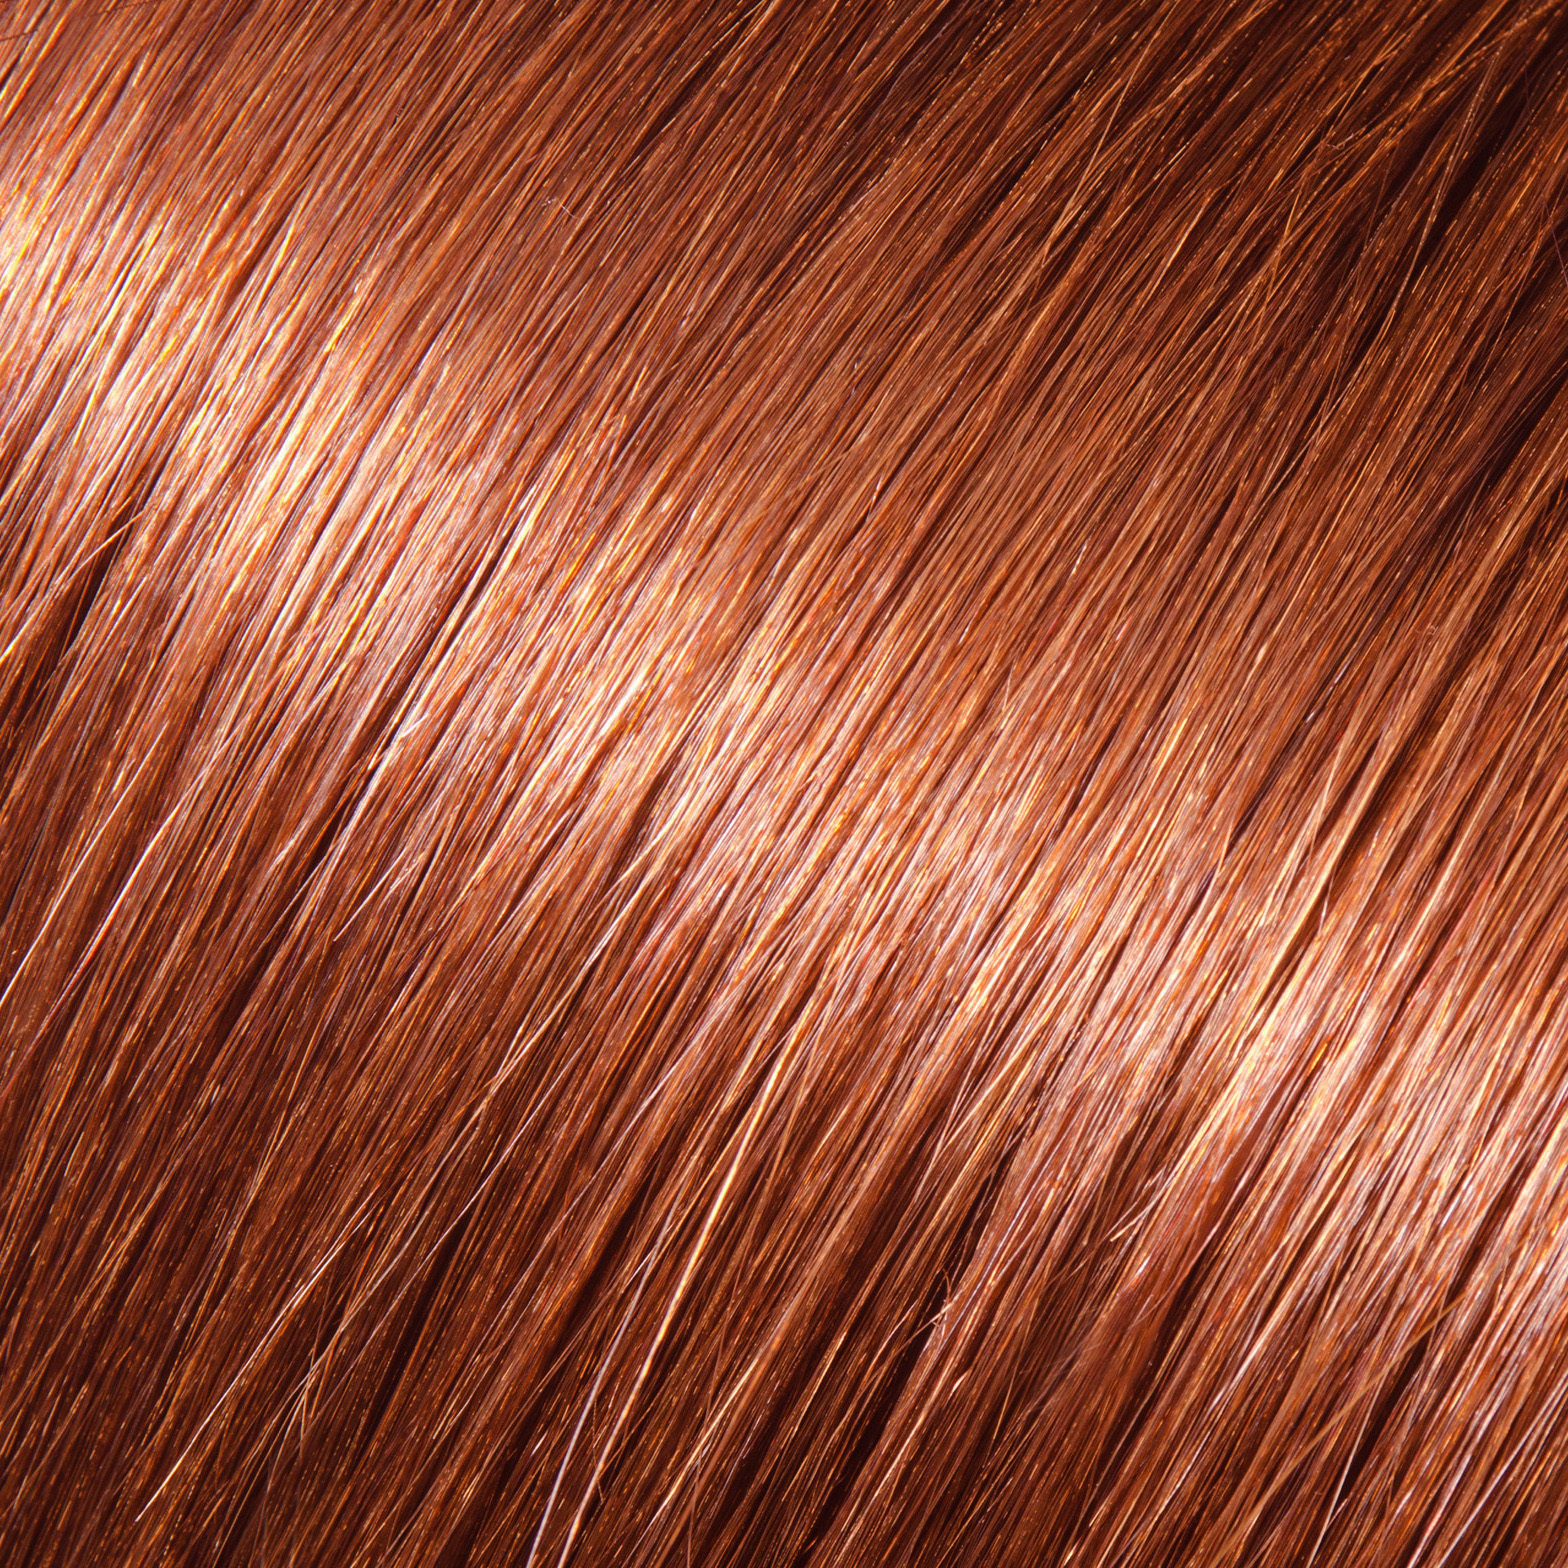 Hair Color Chart For Natural Hair Dye Find The Color Thats Right